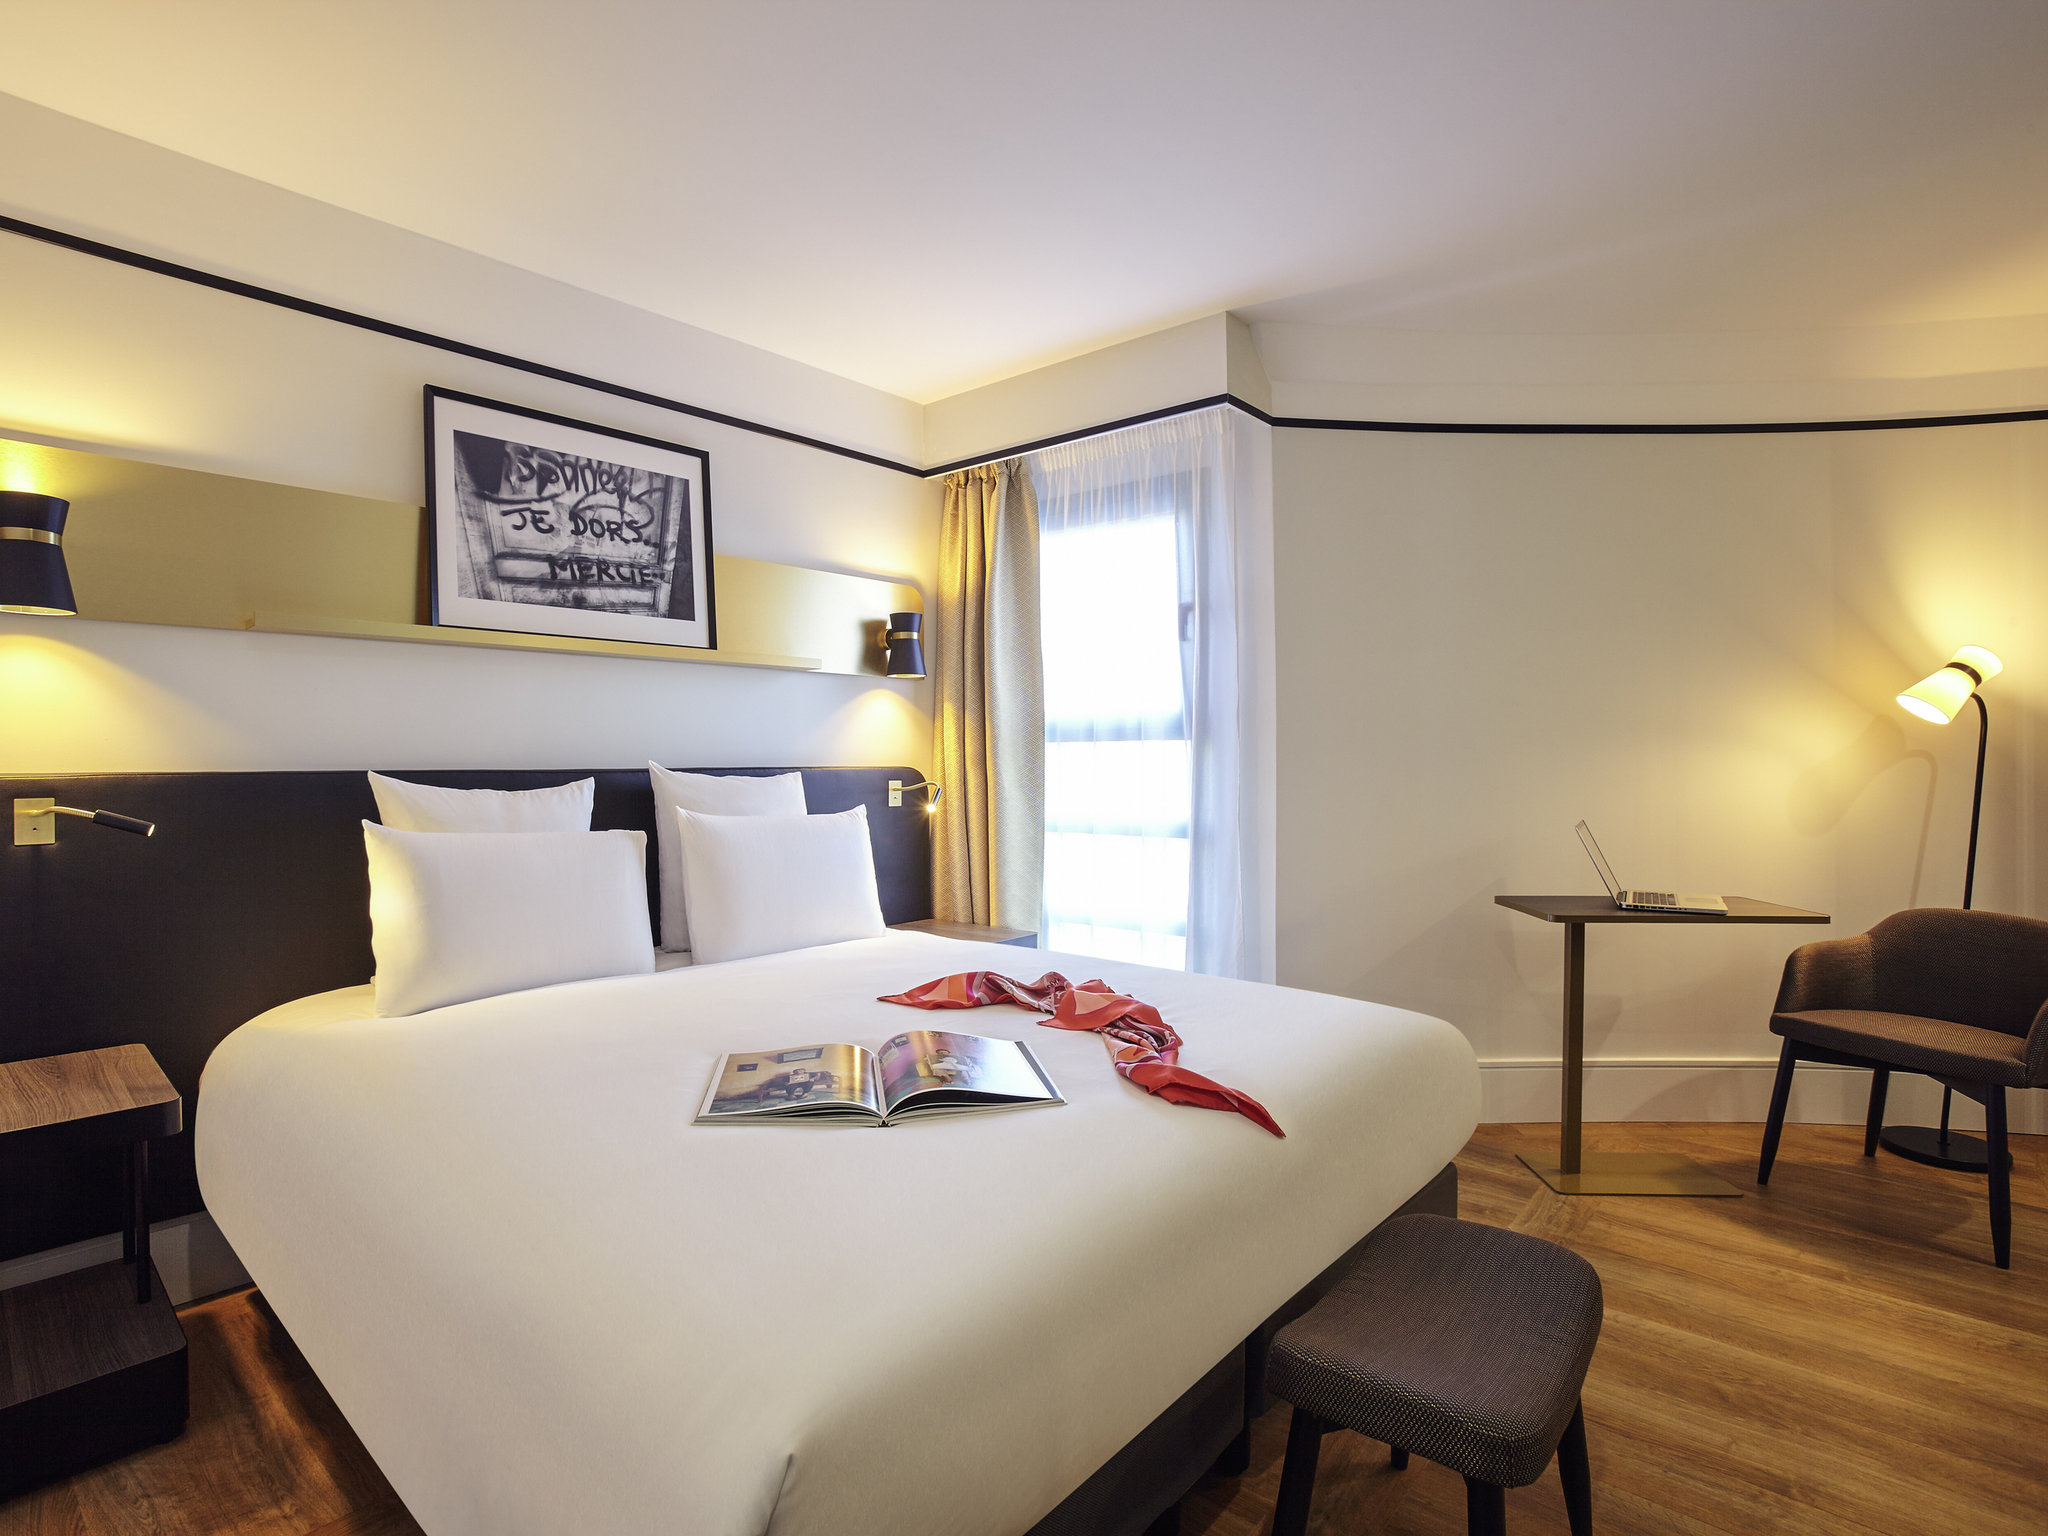 فندق - Hôtel Mercure Paris Saint-Ouen (ex Manhattan)